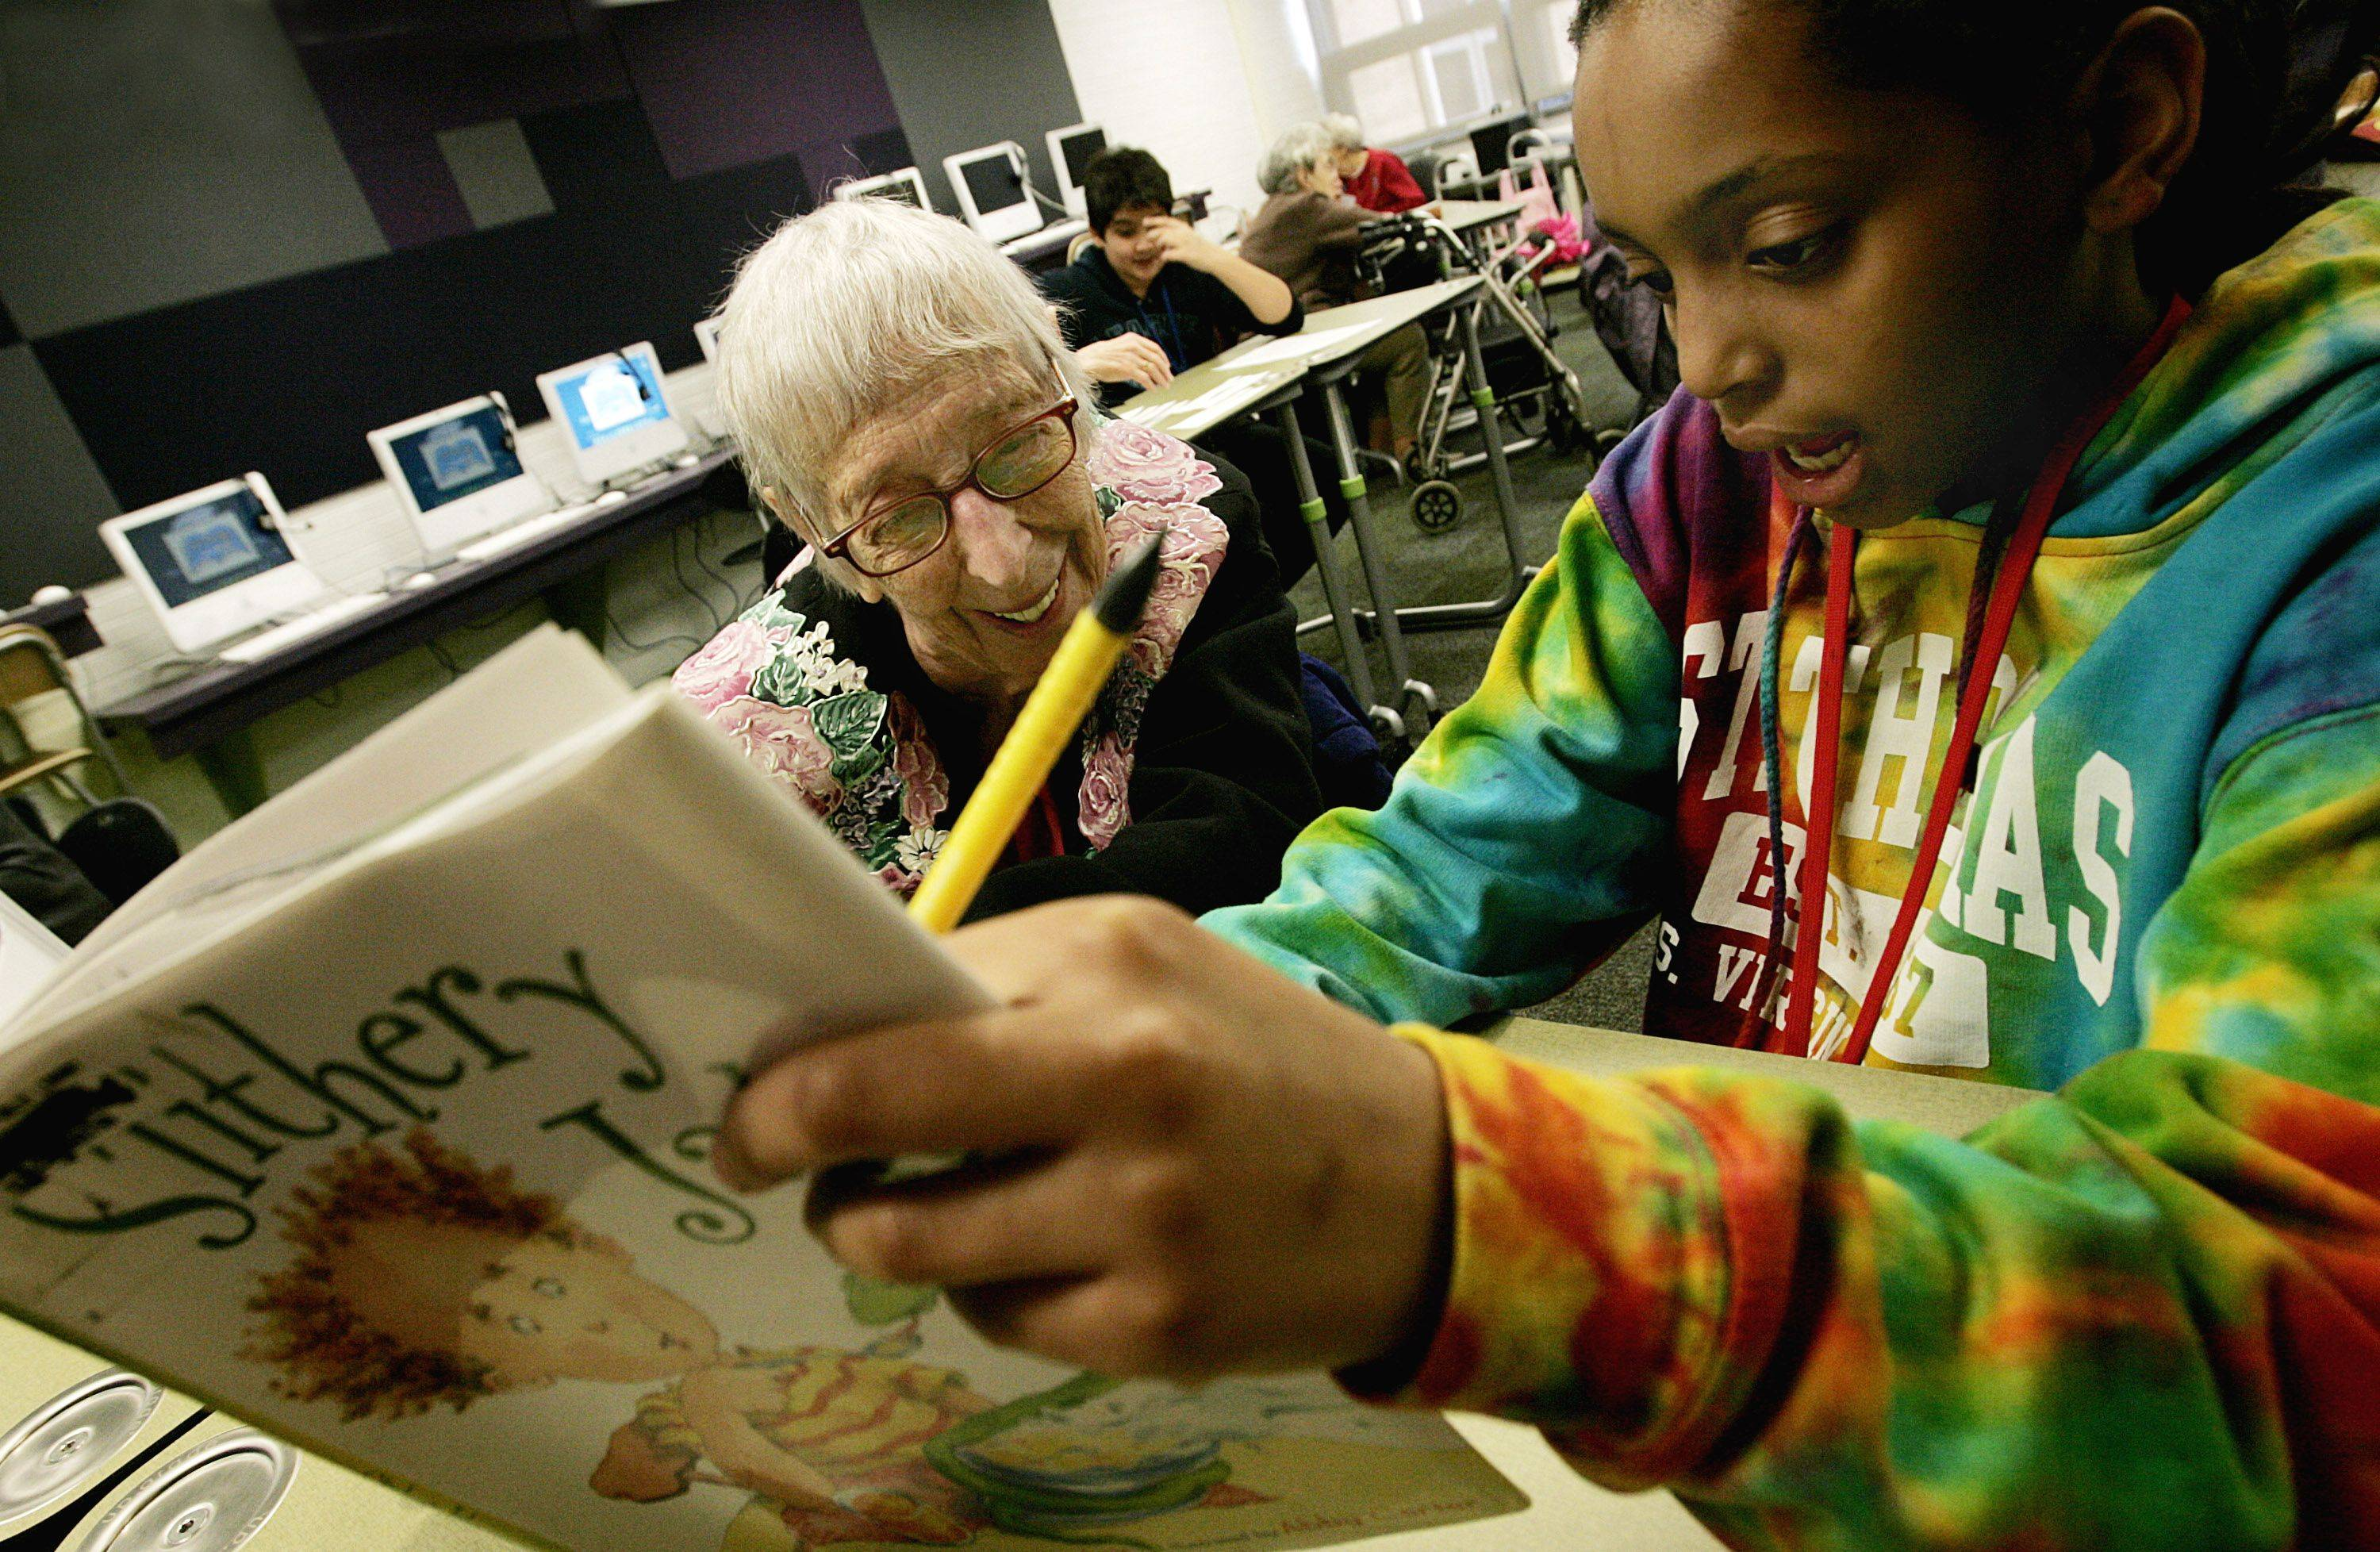 Glen Crest Middle School sixth grader Sydney Johnston, right, reads for senior Jennie Ritzner, left, during their bi-monthly reading session at the school in Glen Ellyn.